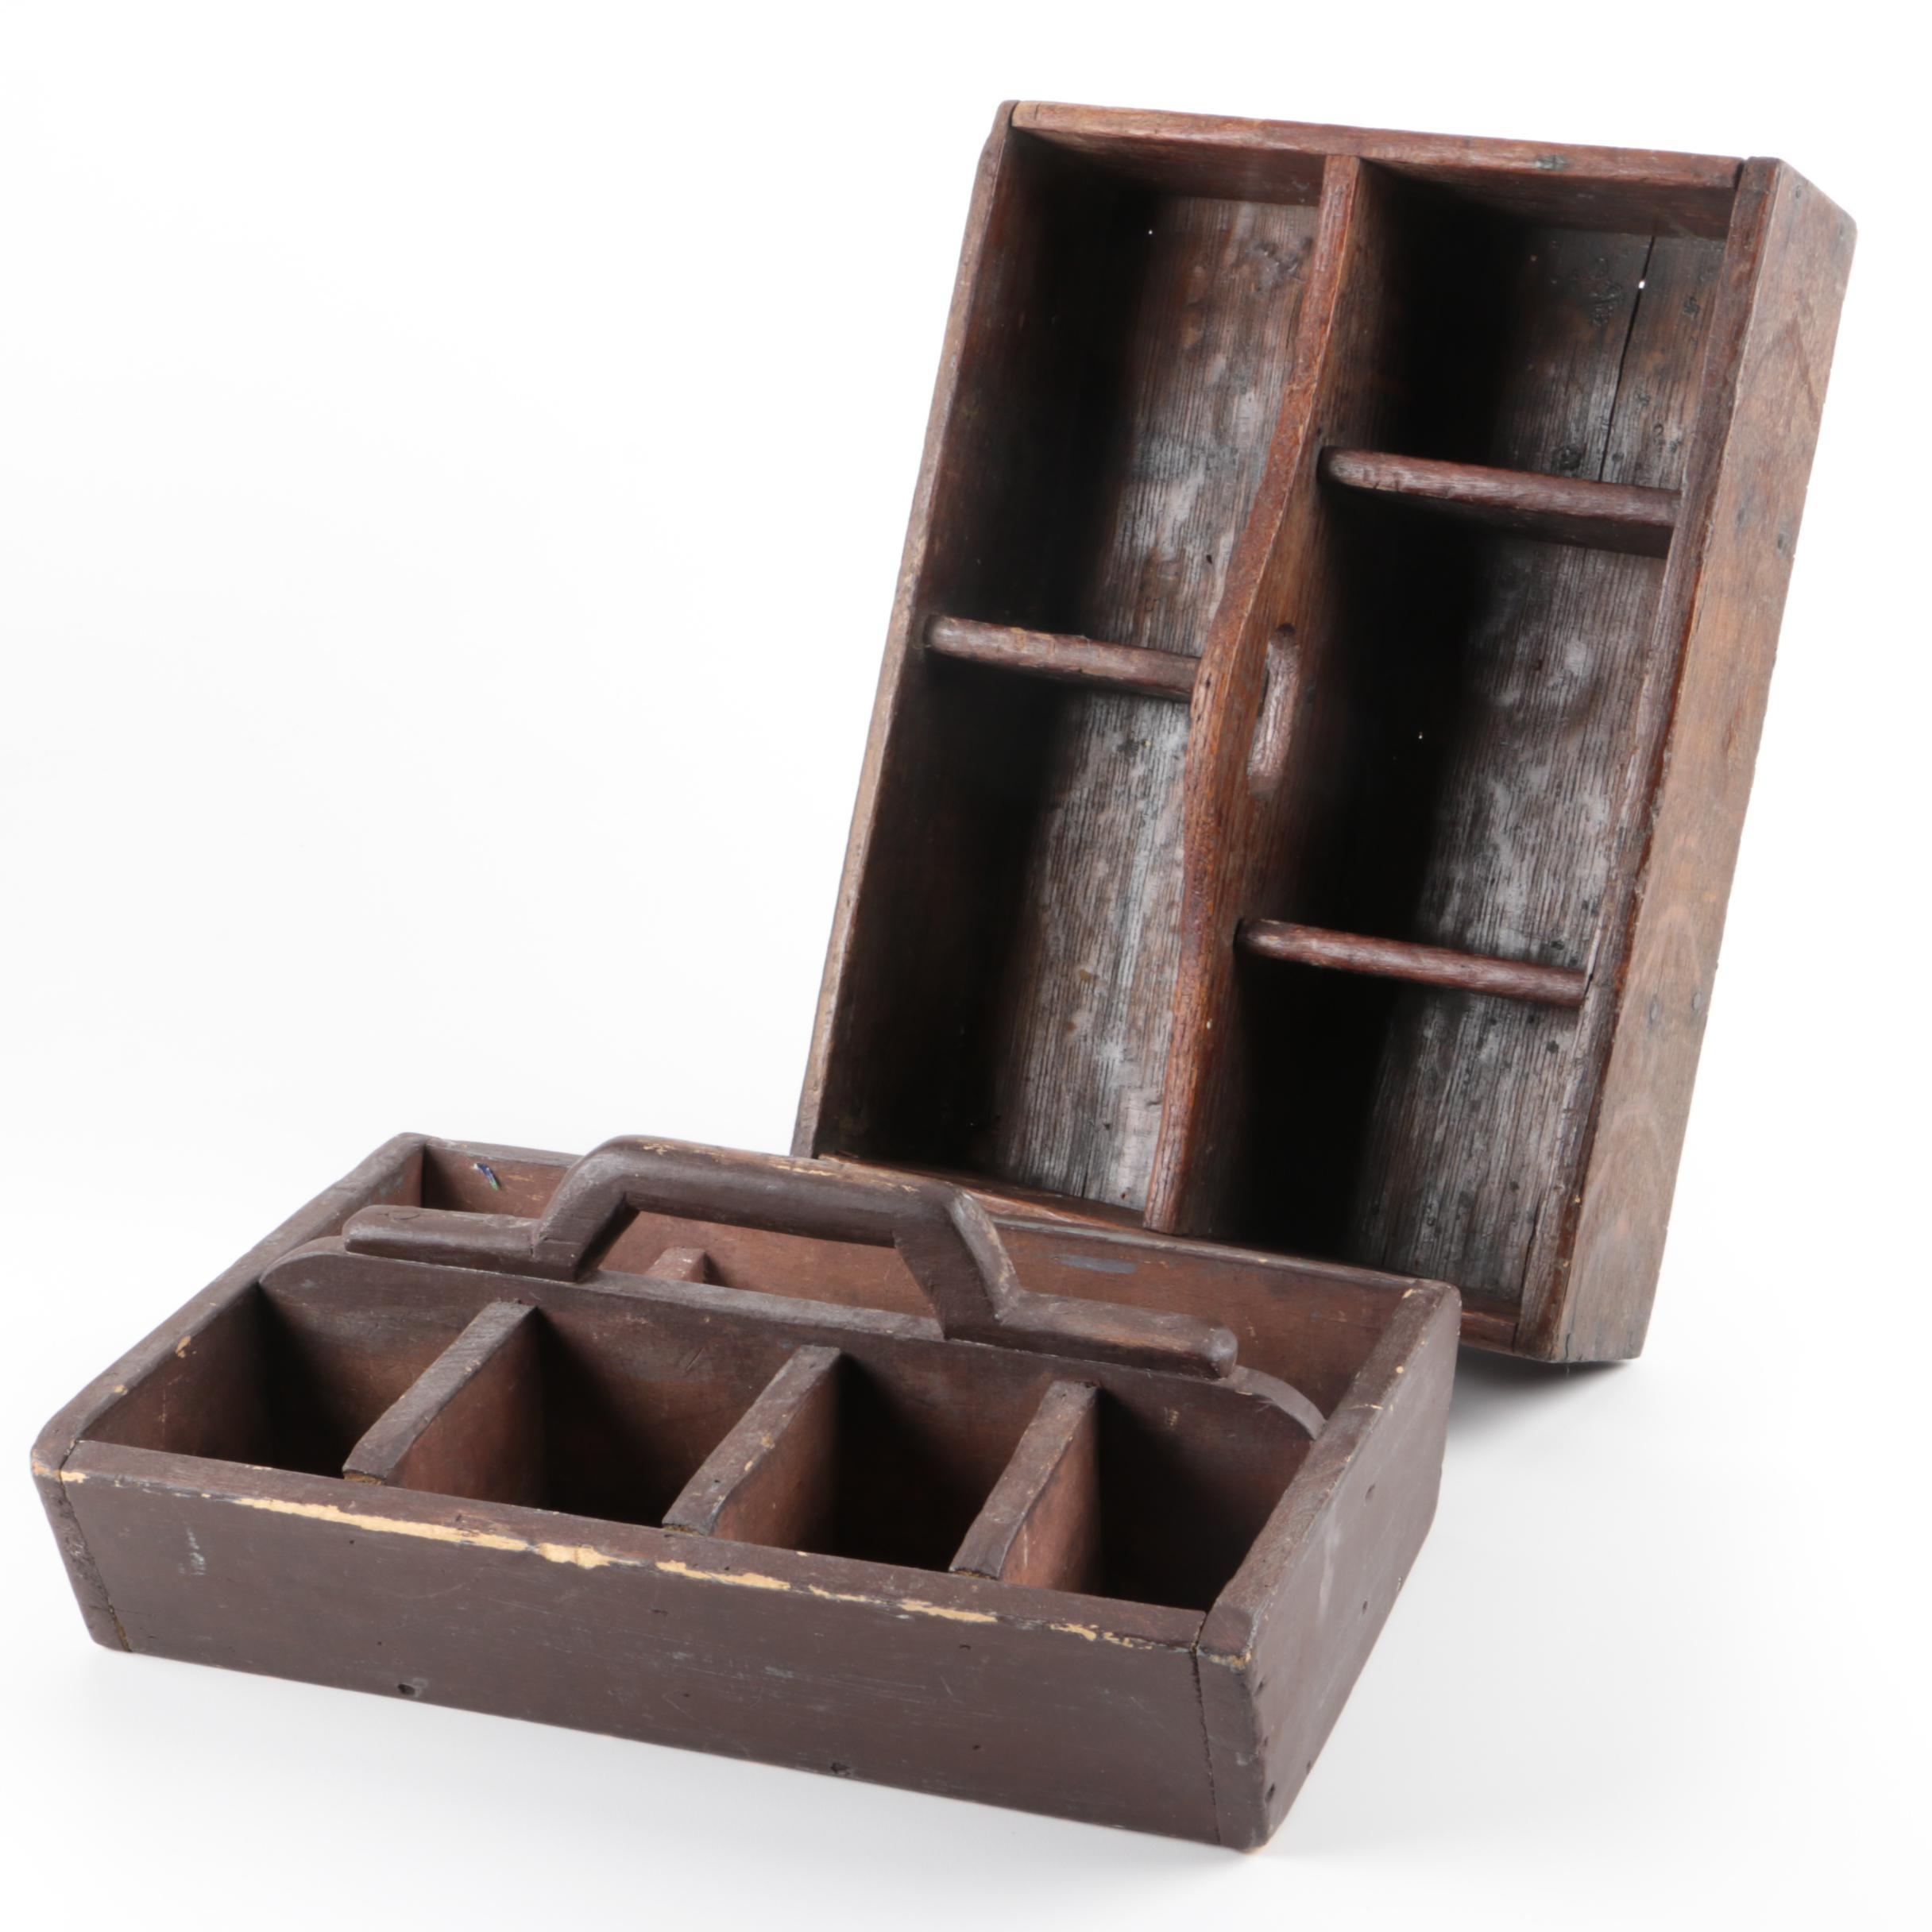 Divided Wooden Trays with Handles